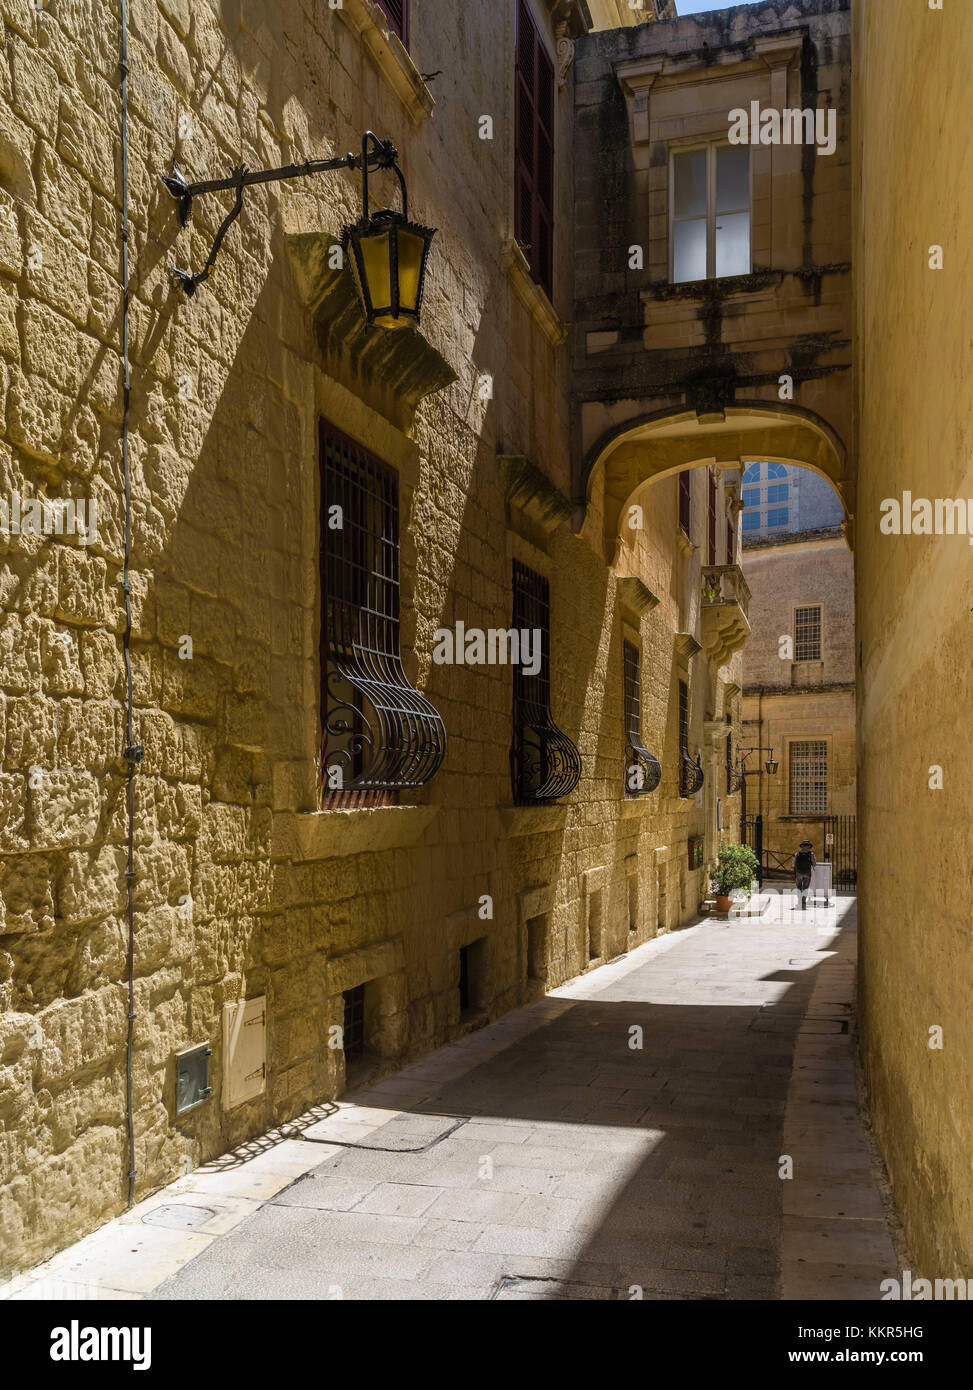 Picturesque lane in old capital of Malta, Mdina Stock Photo